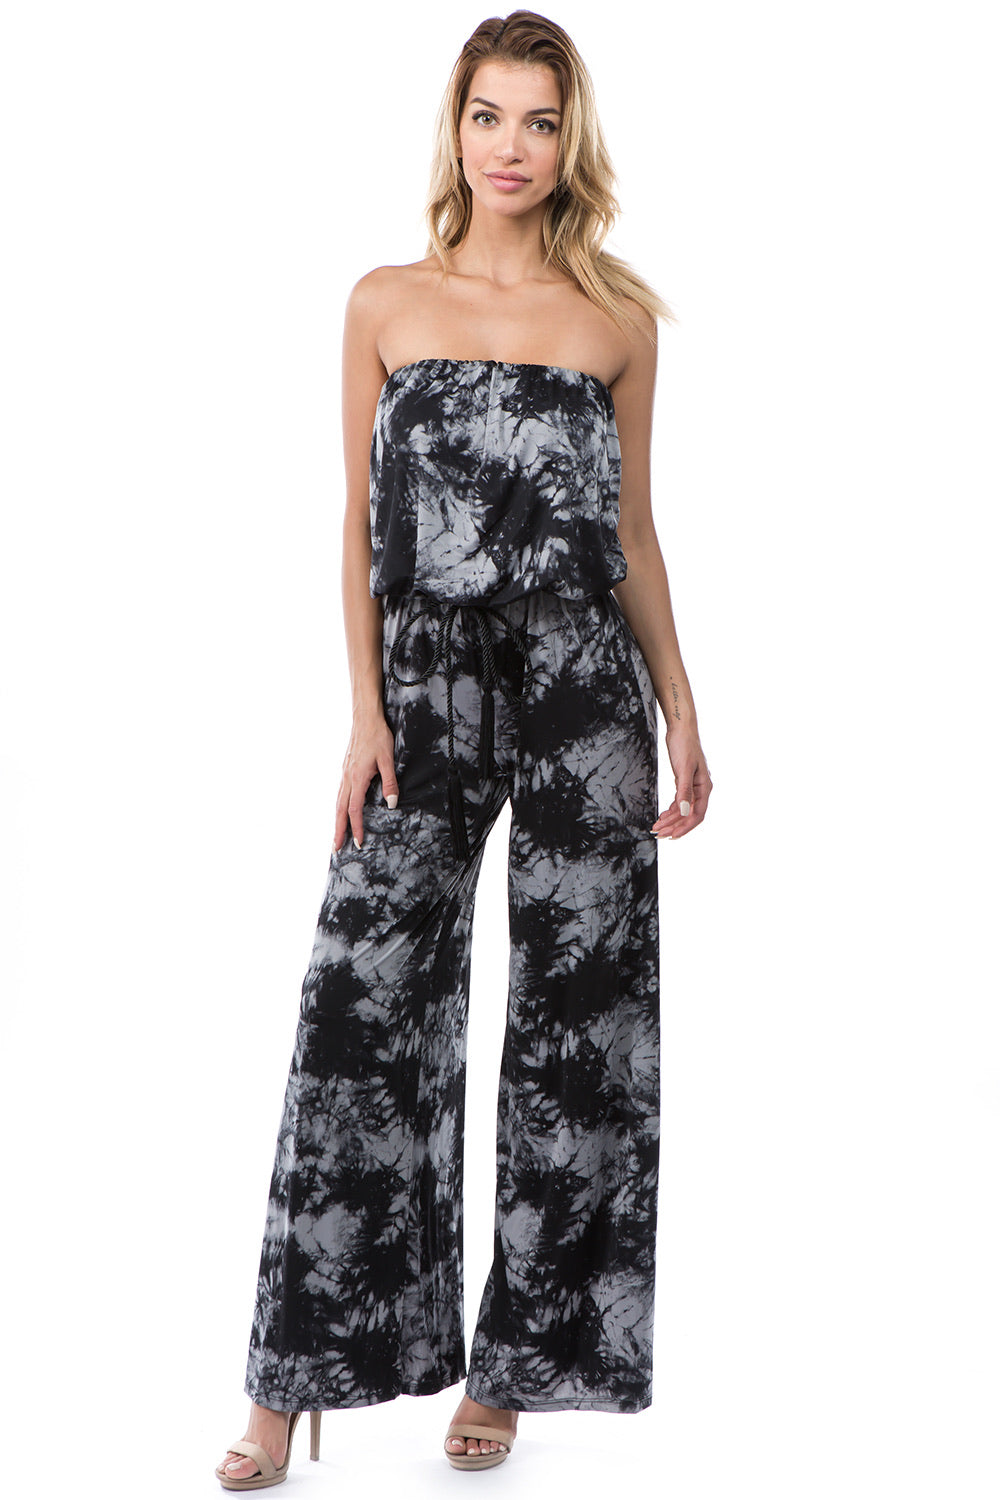 Strapless Jumpsuit in Black Tie Dye